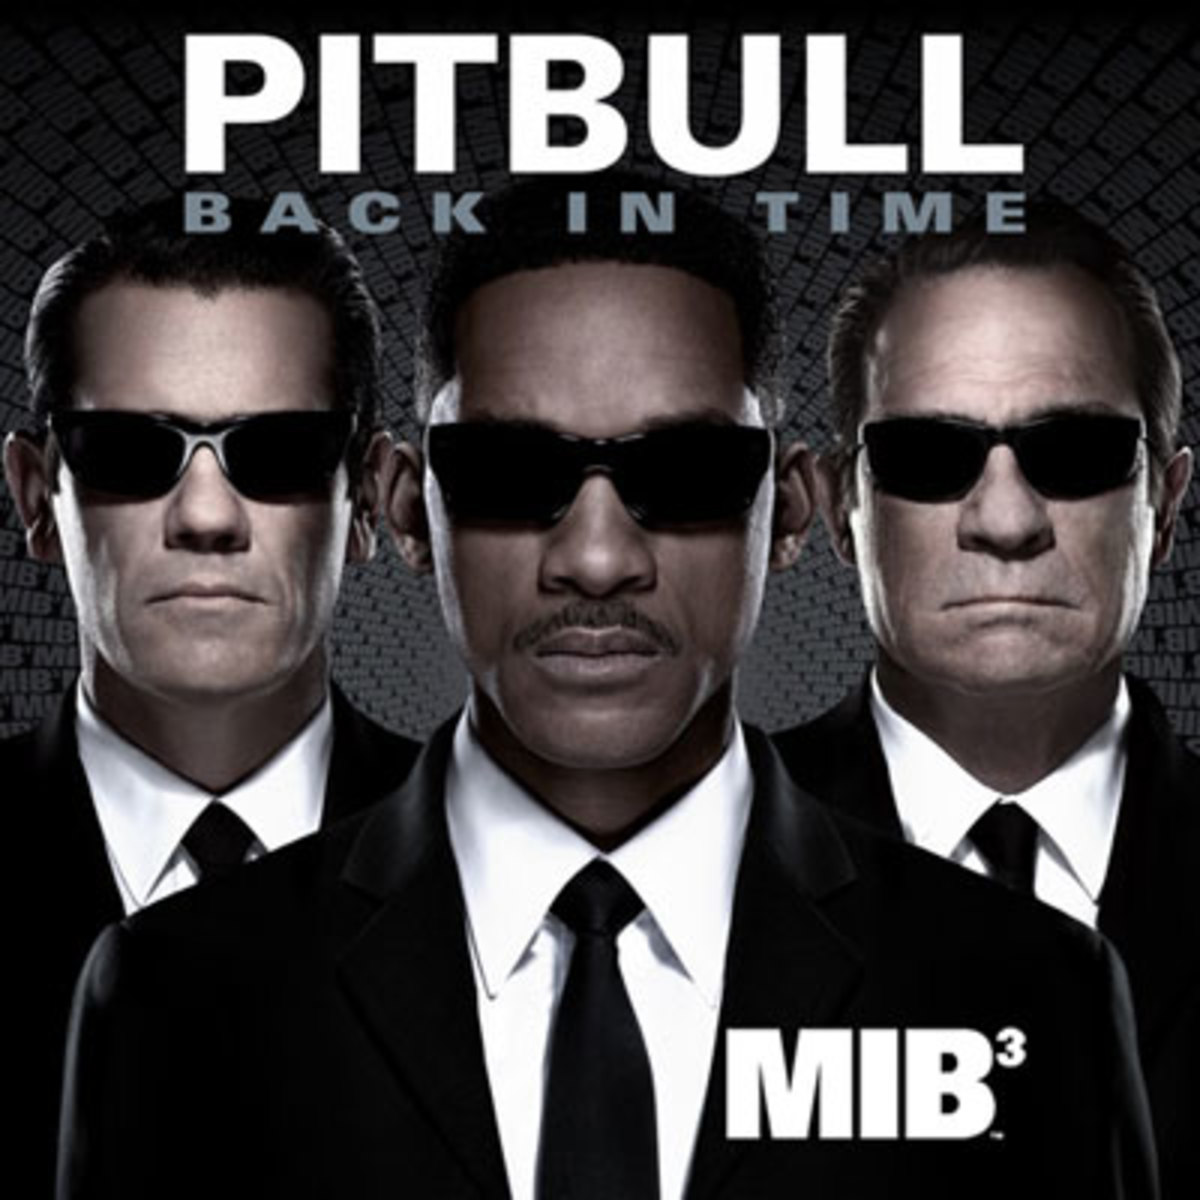 pitbull-backintime.jpg